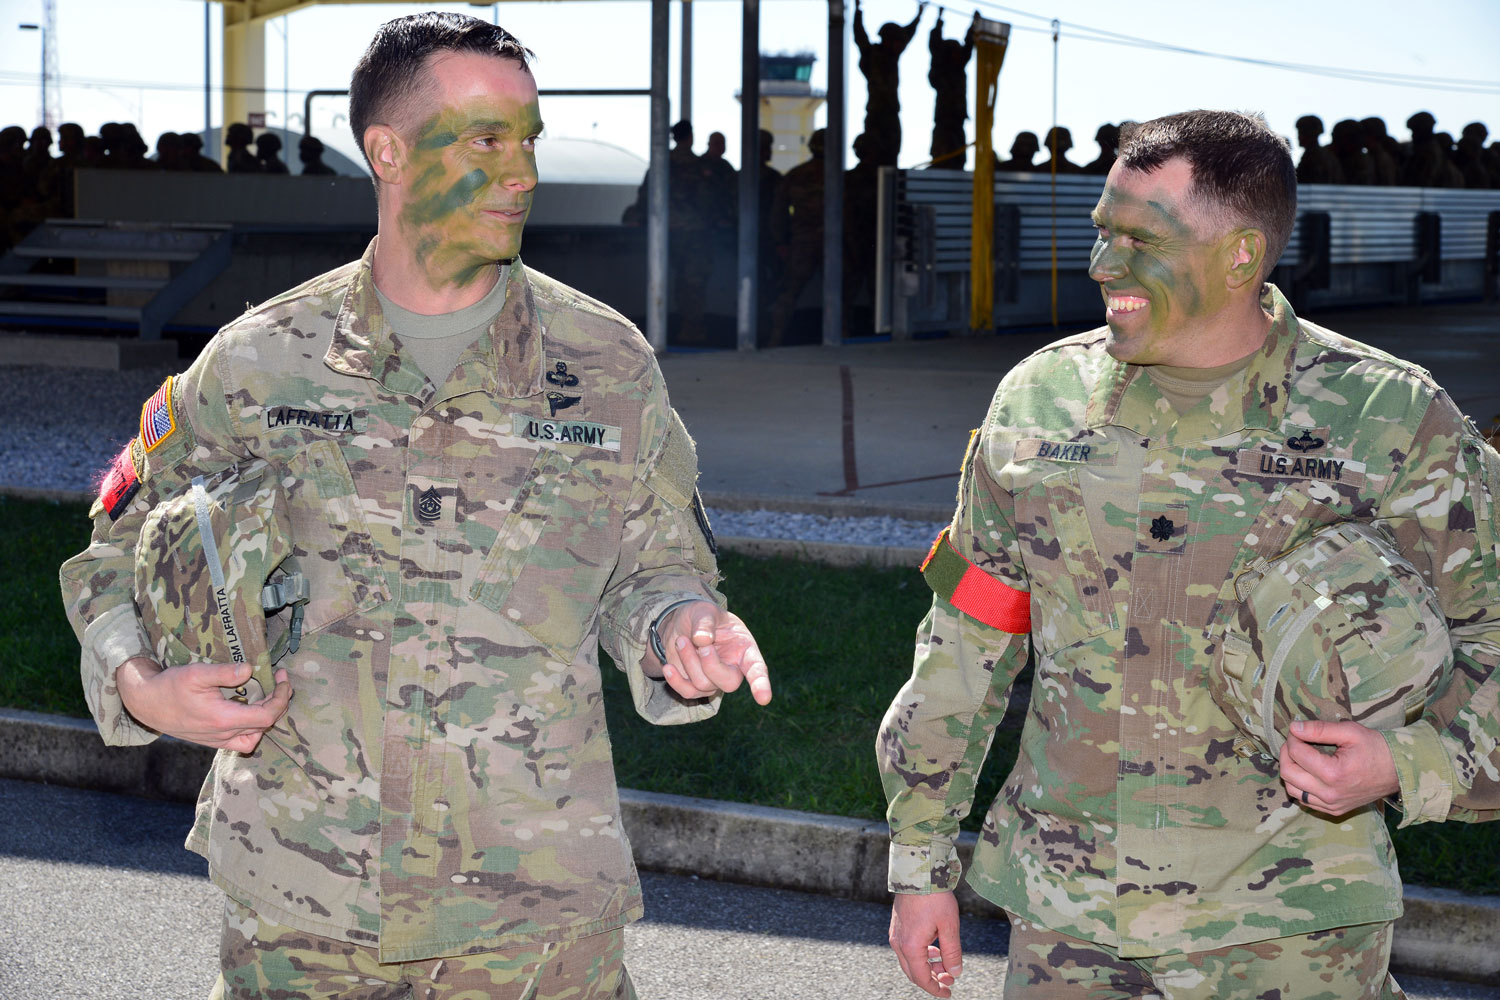 U.S. Army Lt. Col. Christopher W. Baker (right), commander of 173rd Brigade Support Battalion, 173rd Airborne Brigade and U.S. Army Command Sgt. Maj. James A. Lafratta (left), during an airborne operation at Aviano Air Base, in Pordenone, Italy.